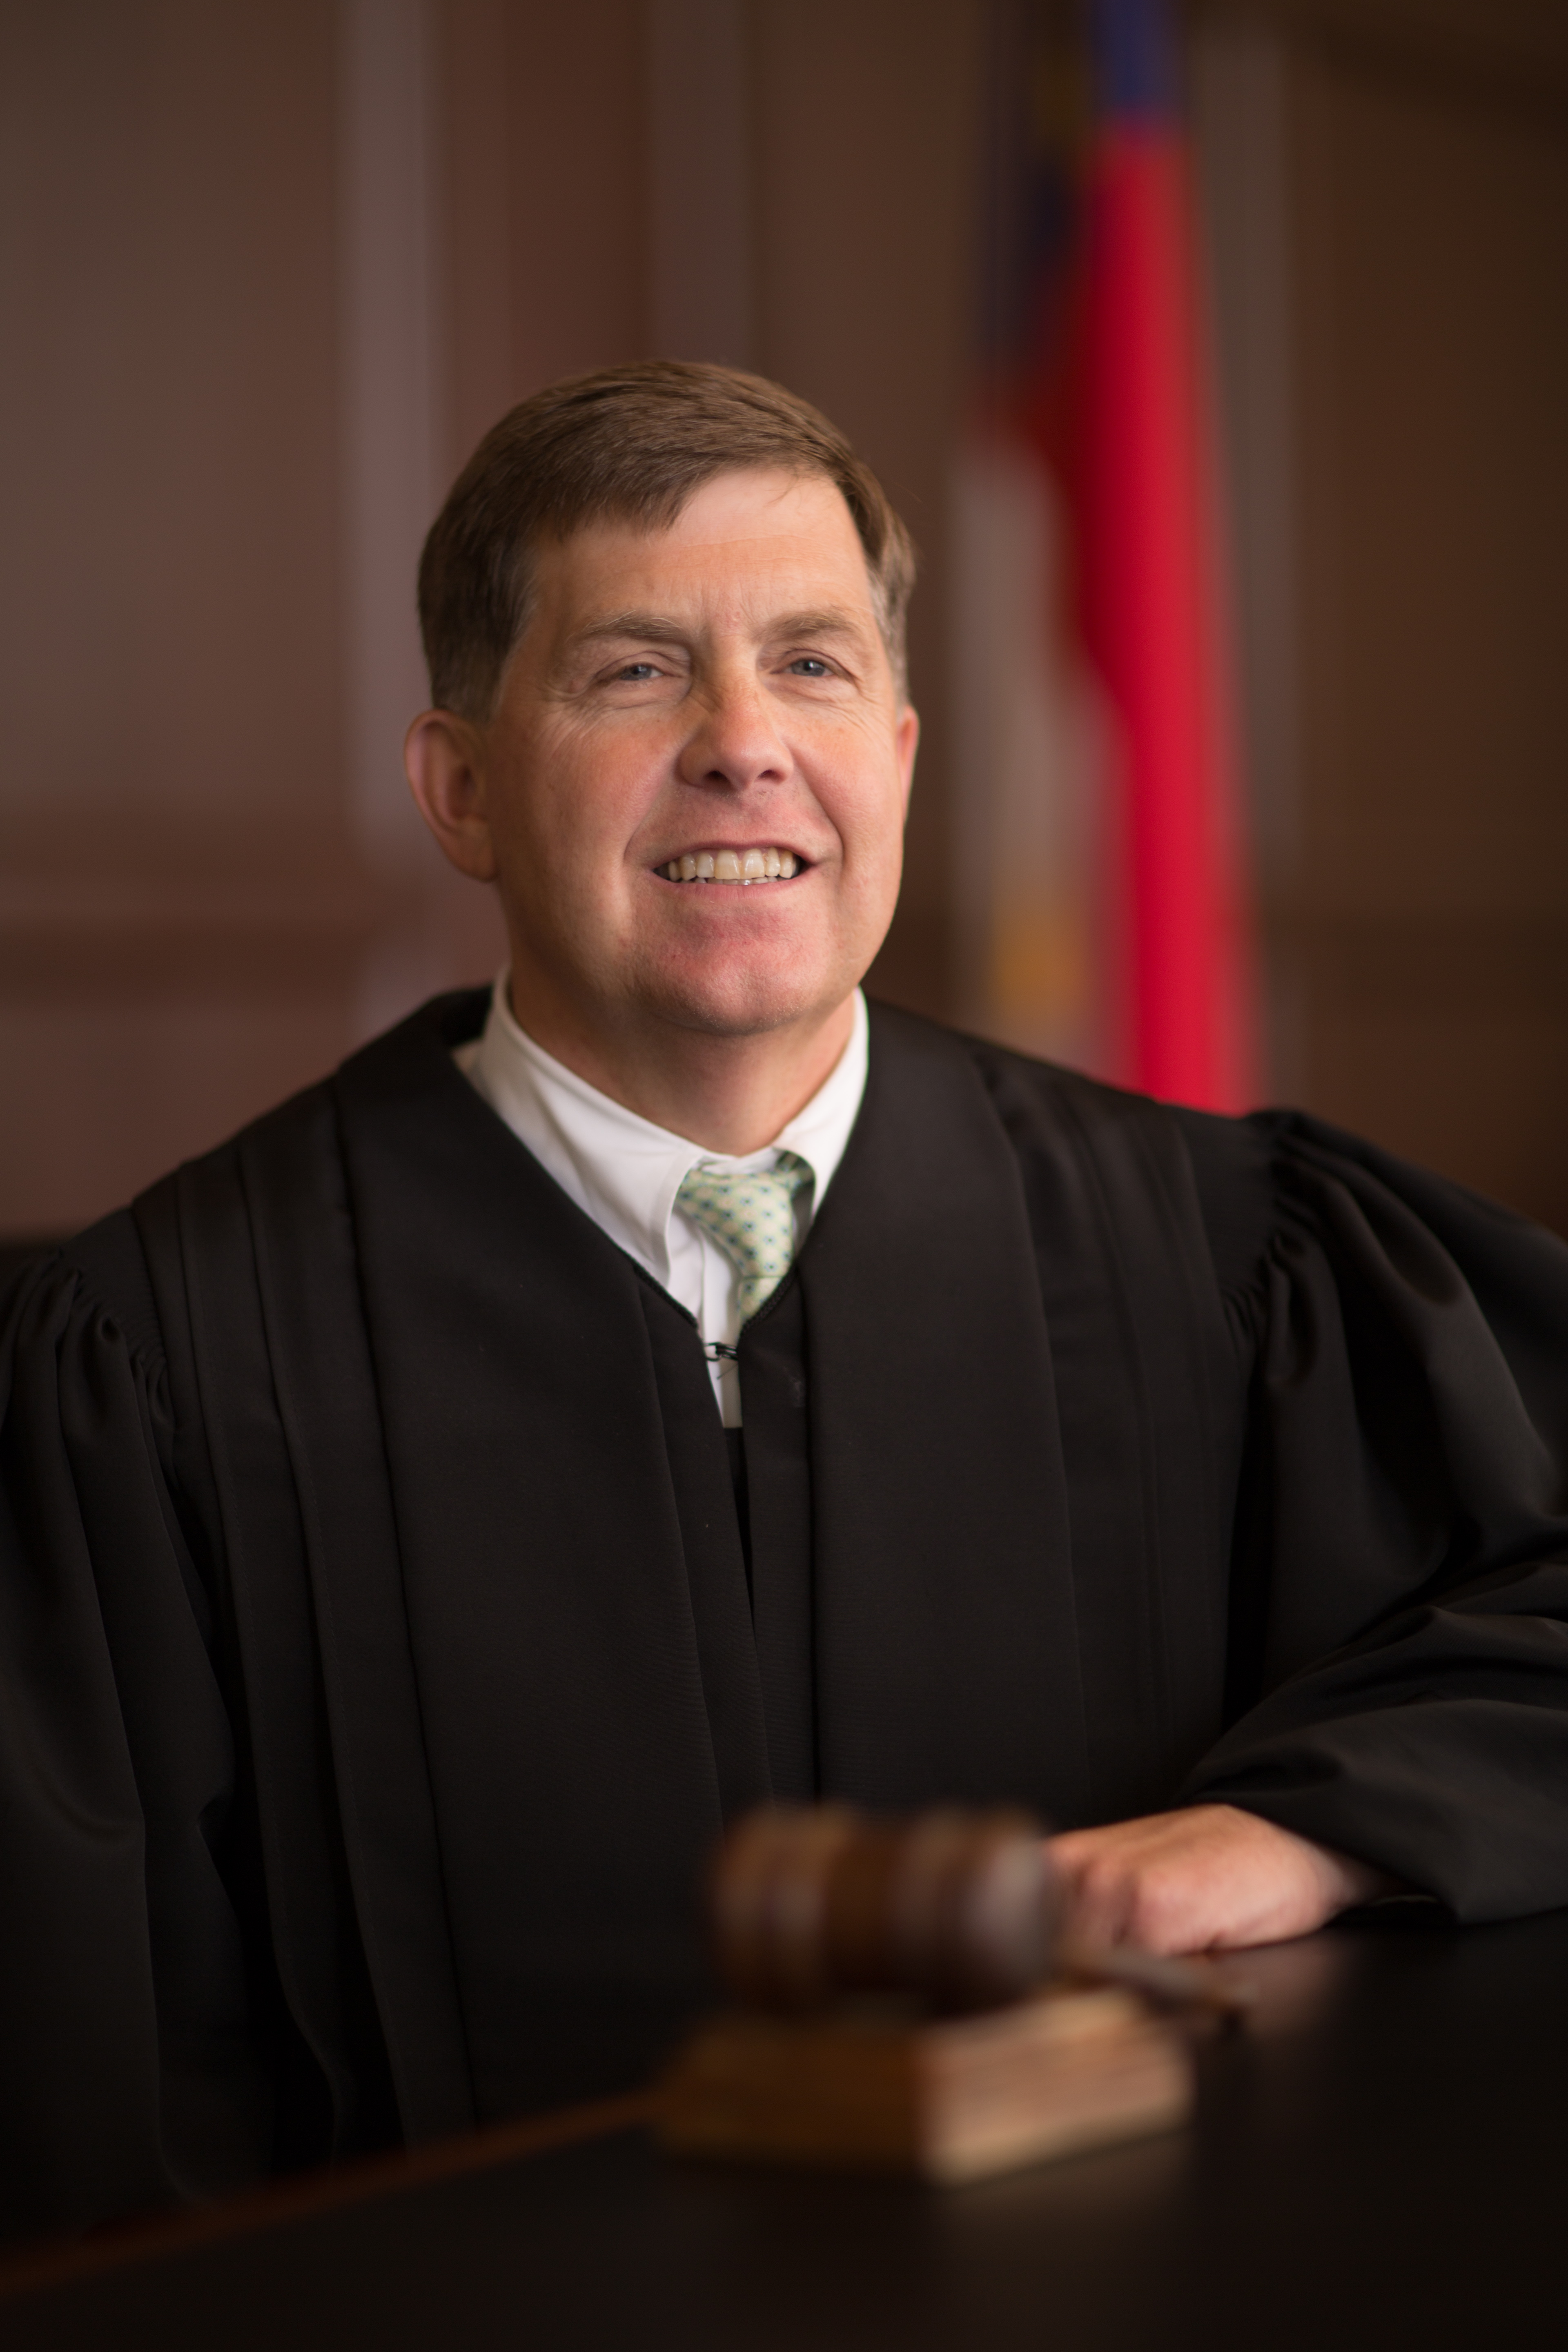 Judge Dillon at the NC Court of Appeals in Raleigh, NC.